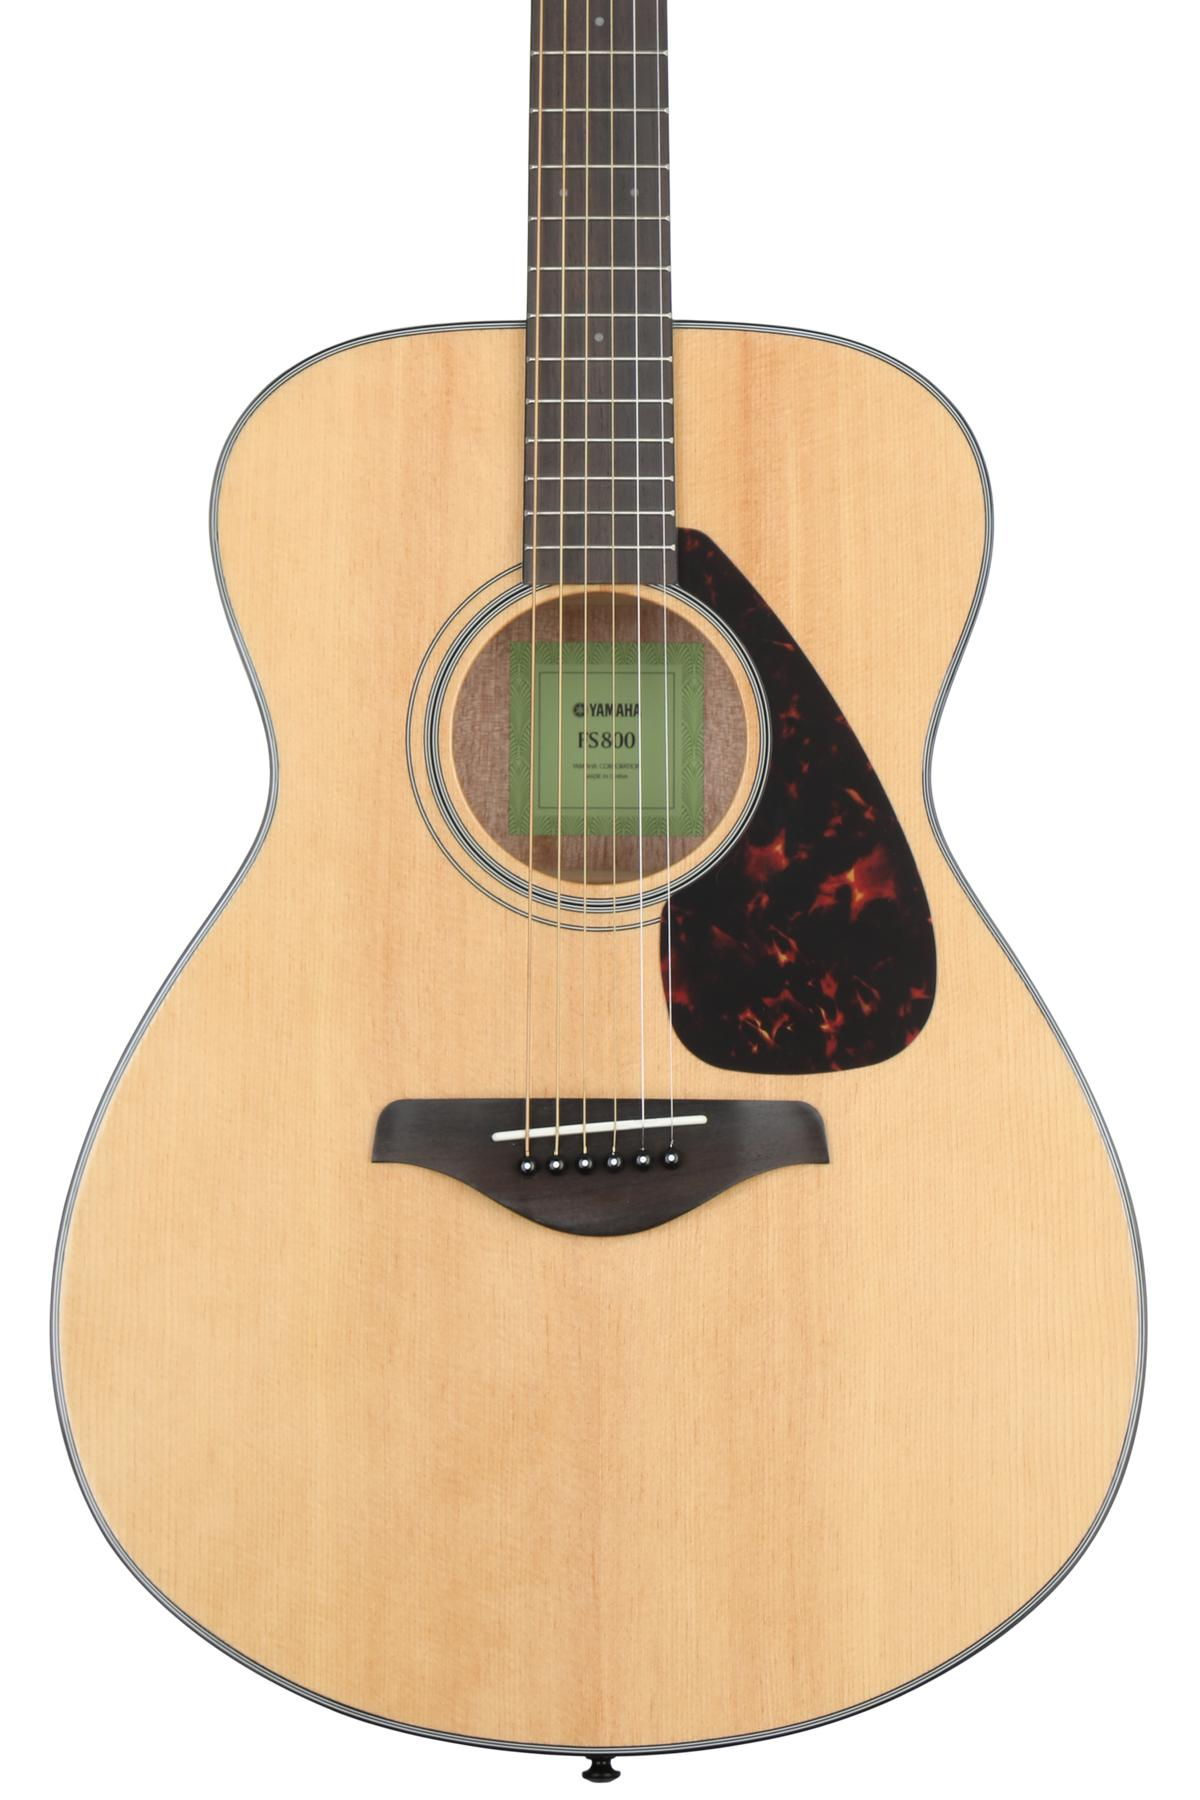 6. Yamaha FS800 Solid Top Small Body Acoustic Guitar